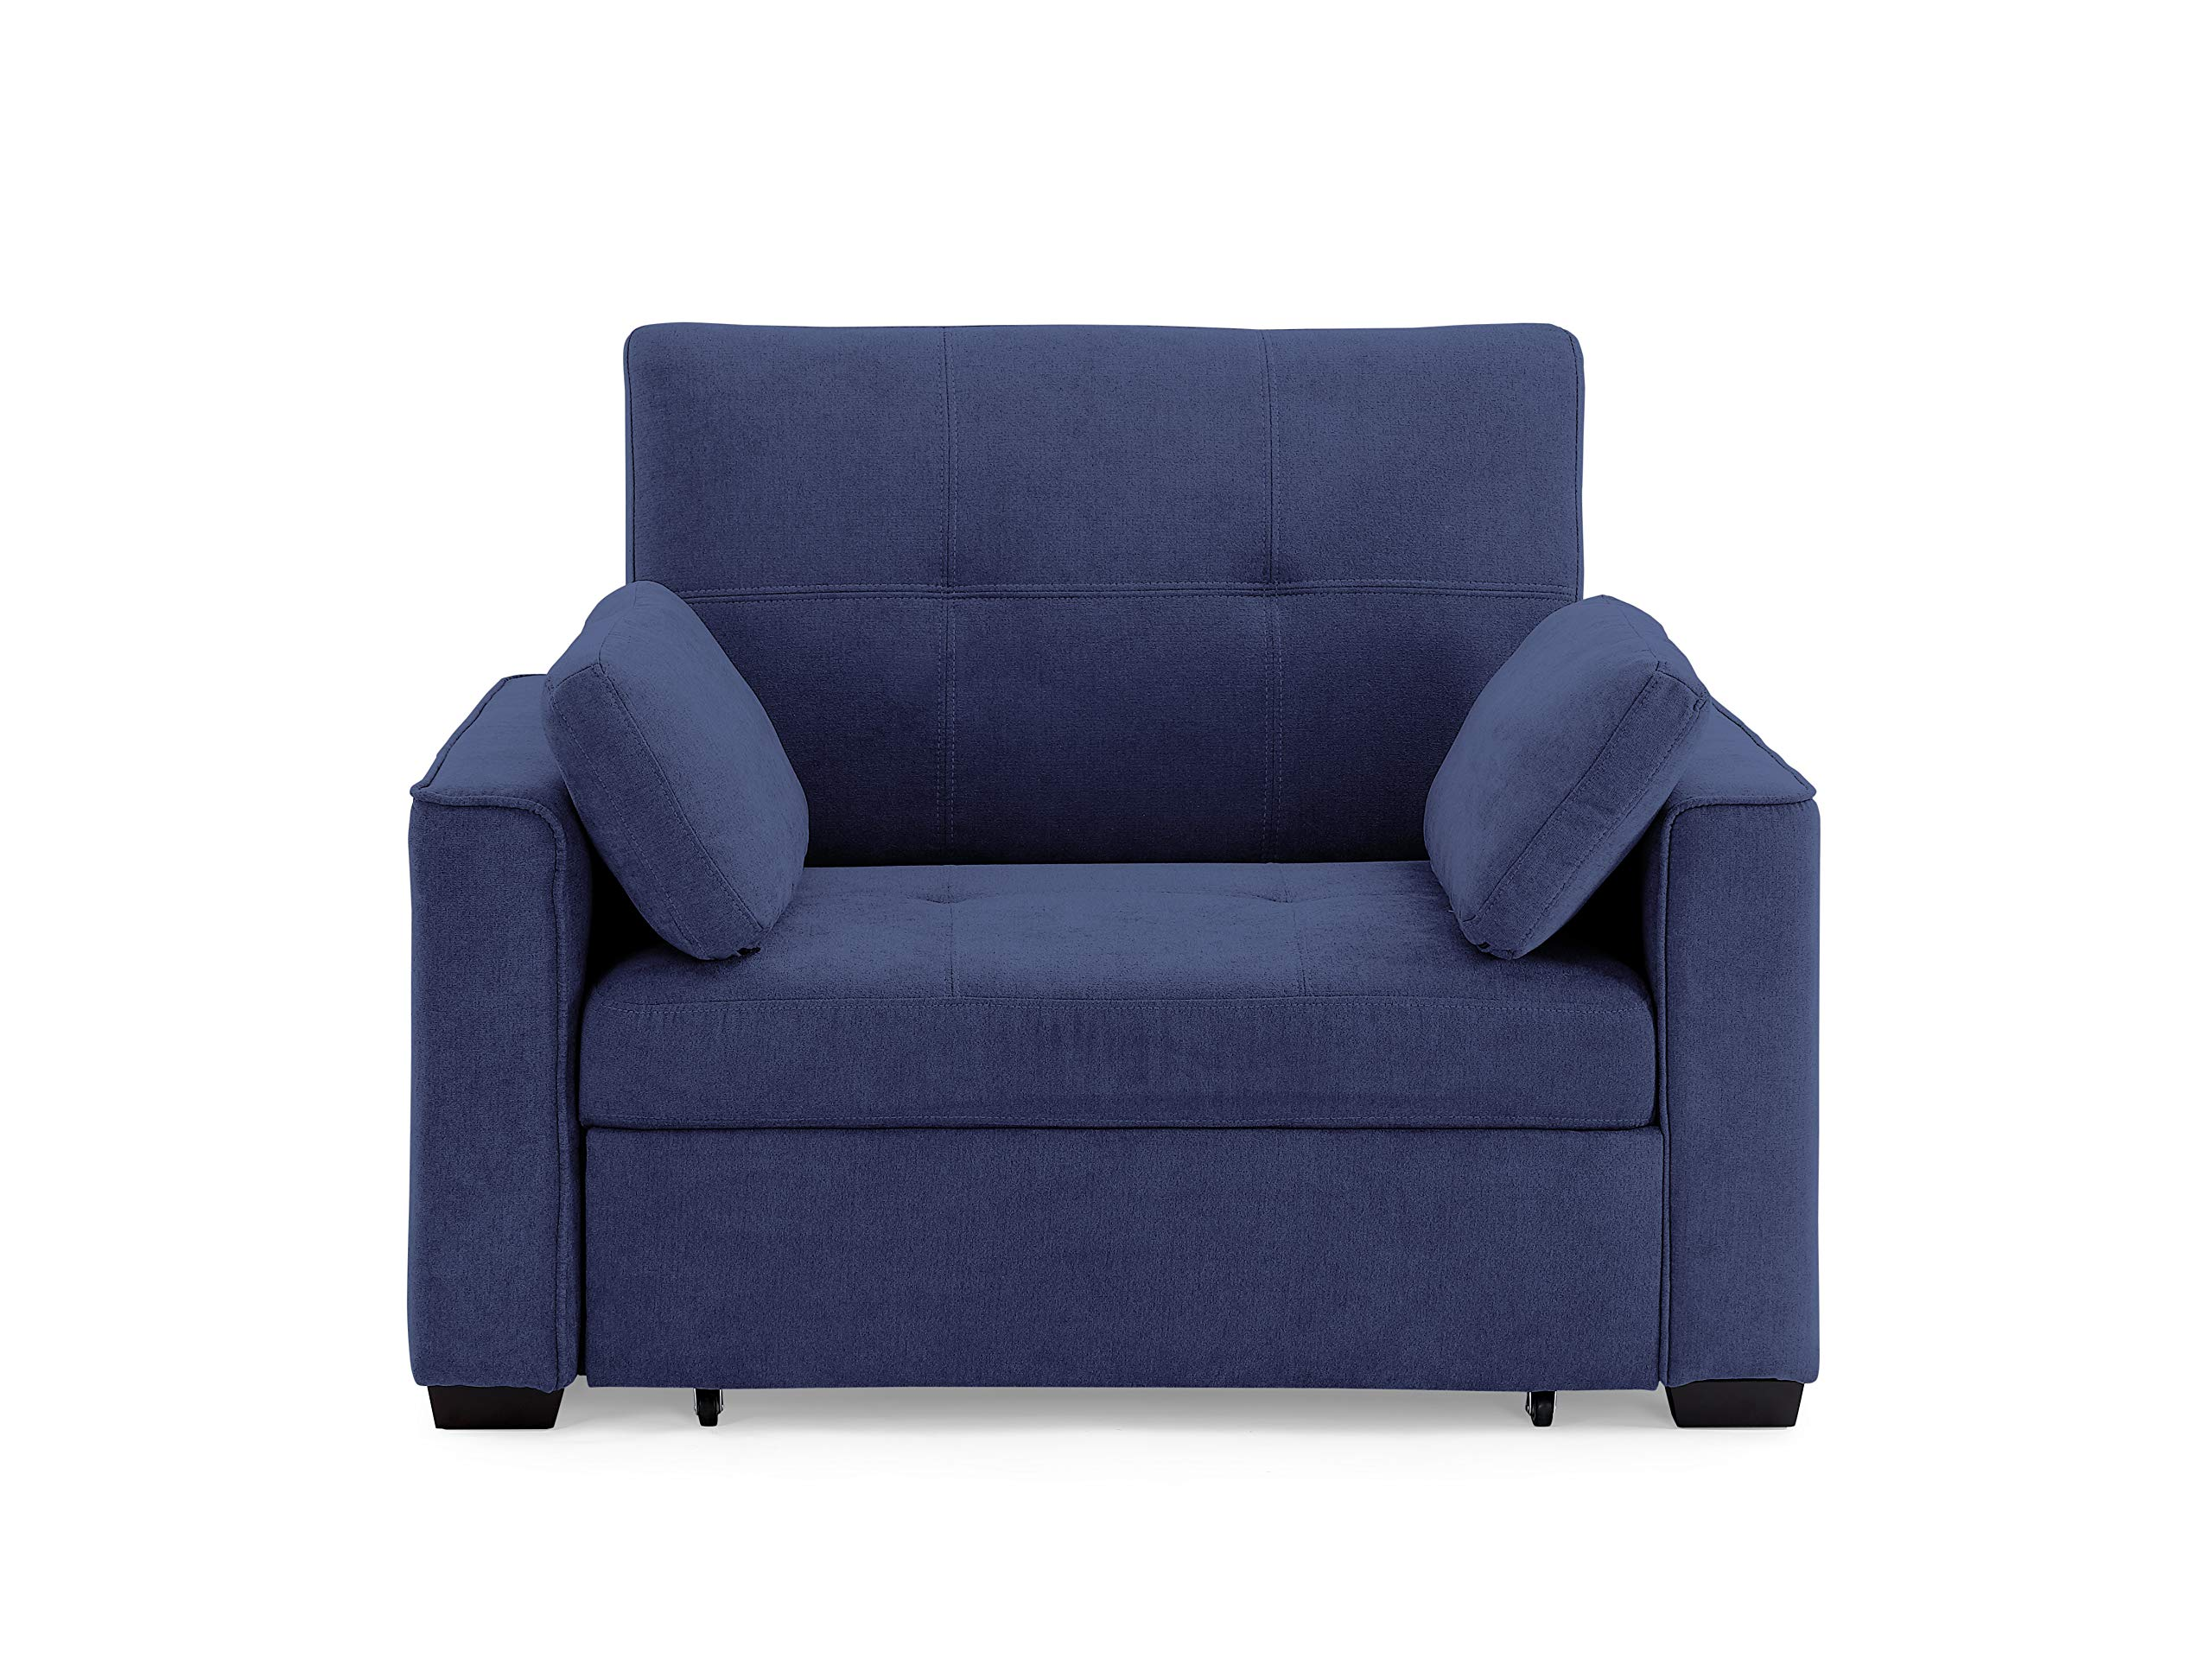 Night & Day Furniture NANTUCKET TWIN NAVY Sofabed, Blue by Night & Day Furniture